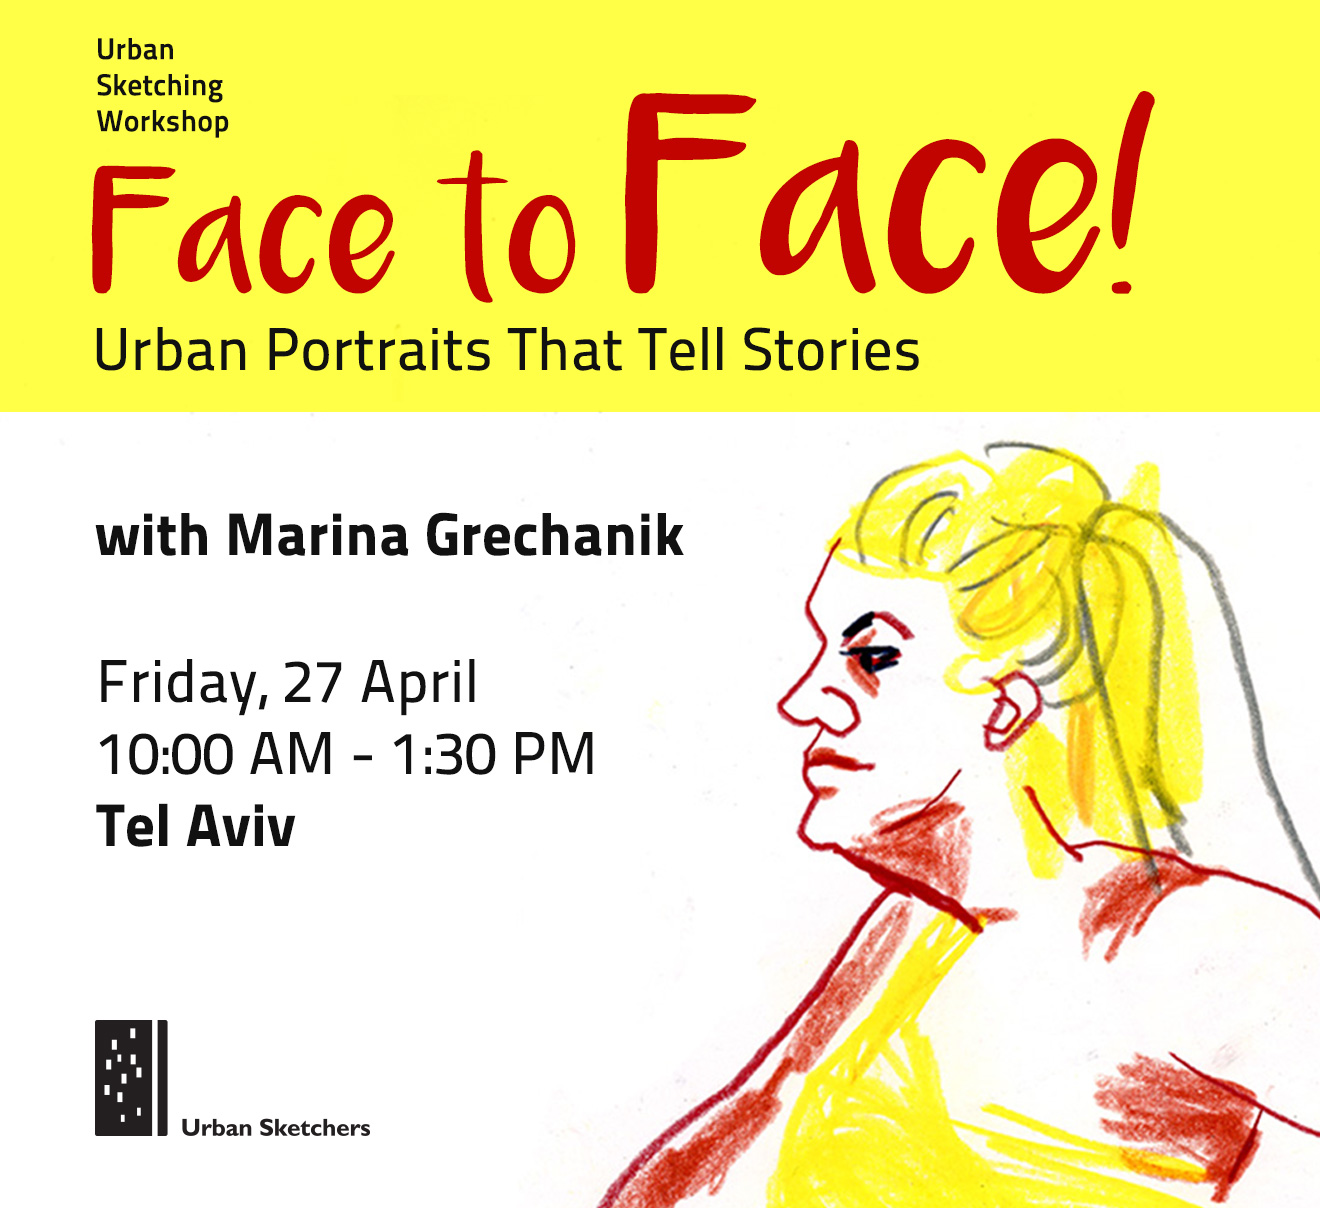 Face to Face! Urban Portraits That Tell Stories | Urban Sketchers